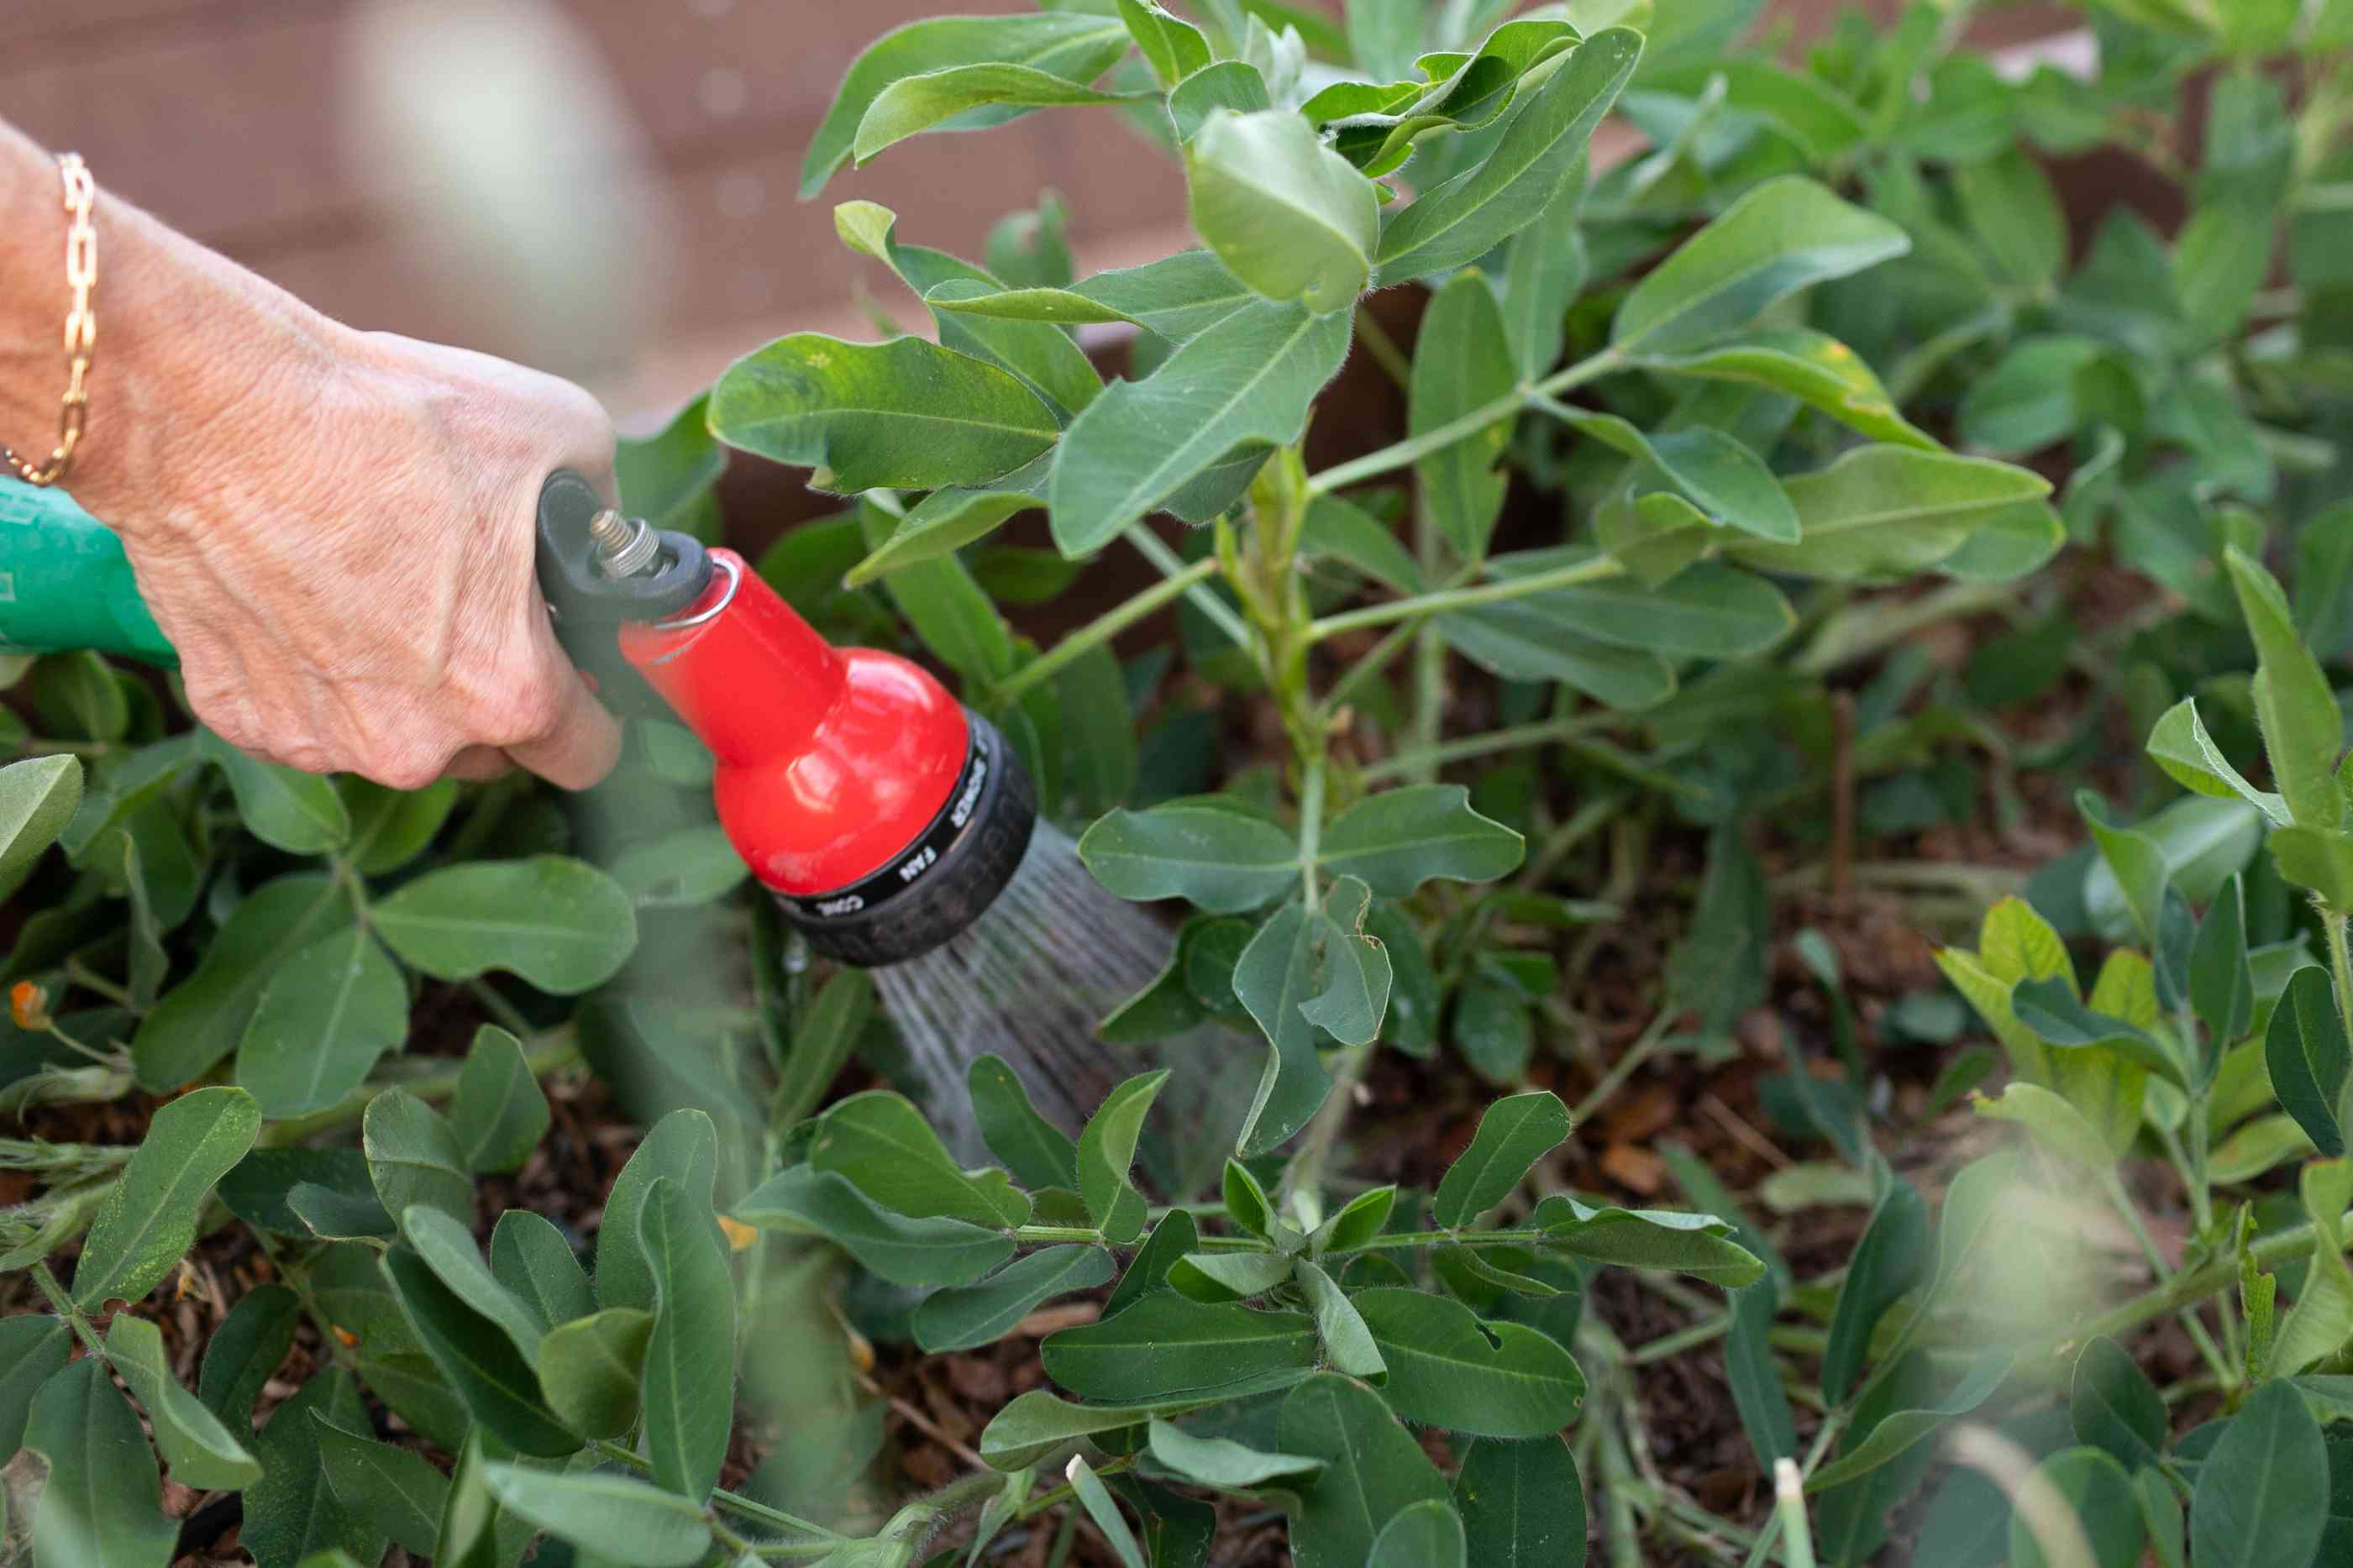 Vegetable garden being watered with red hose in close access